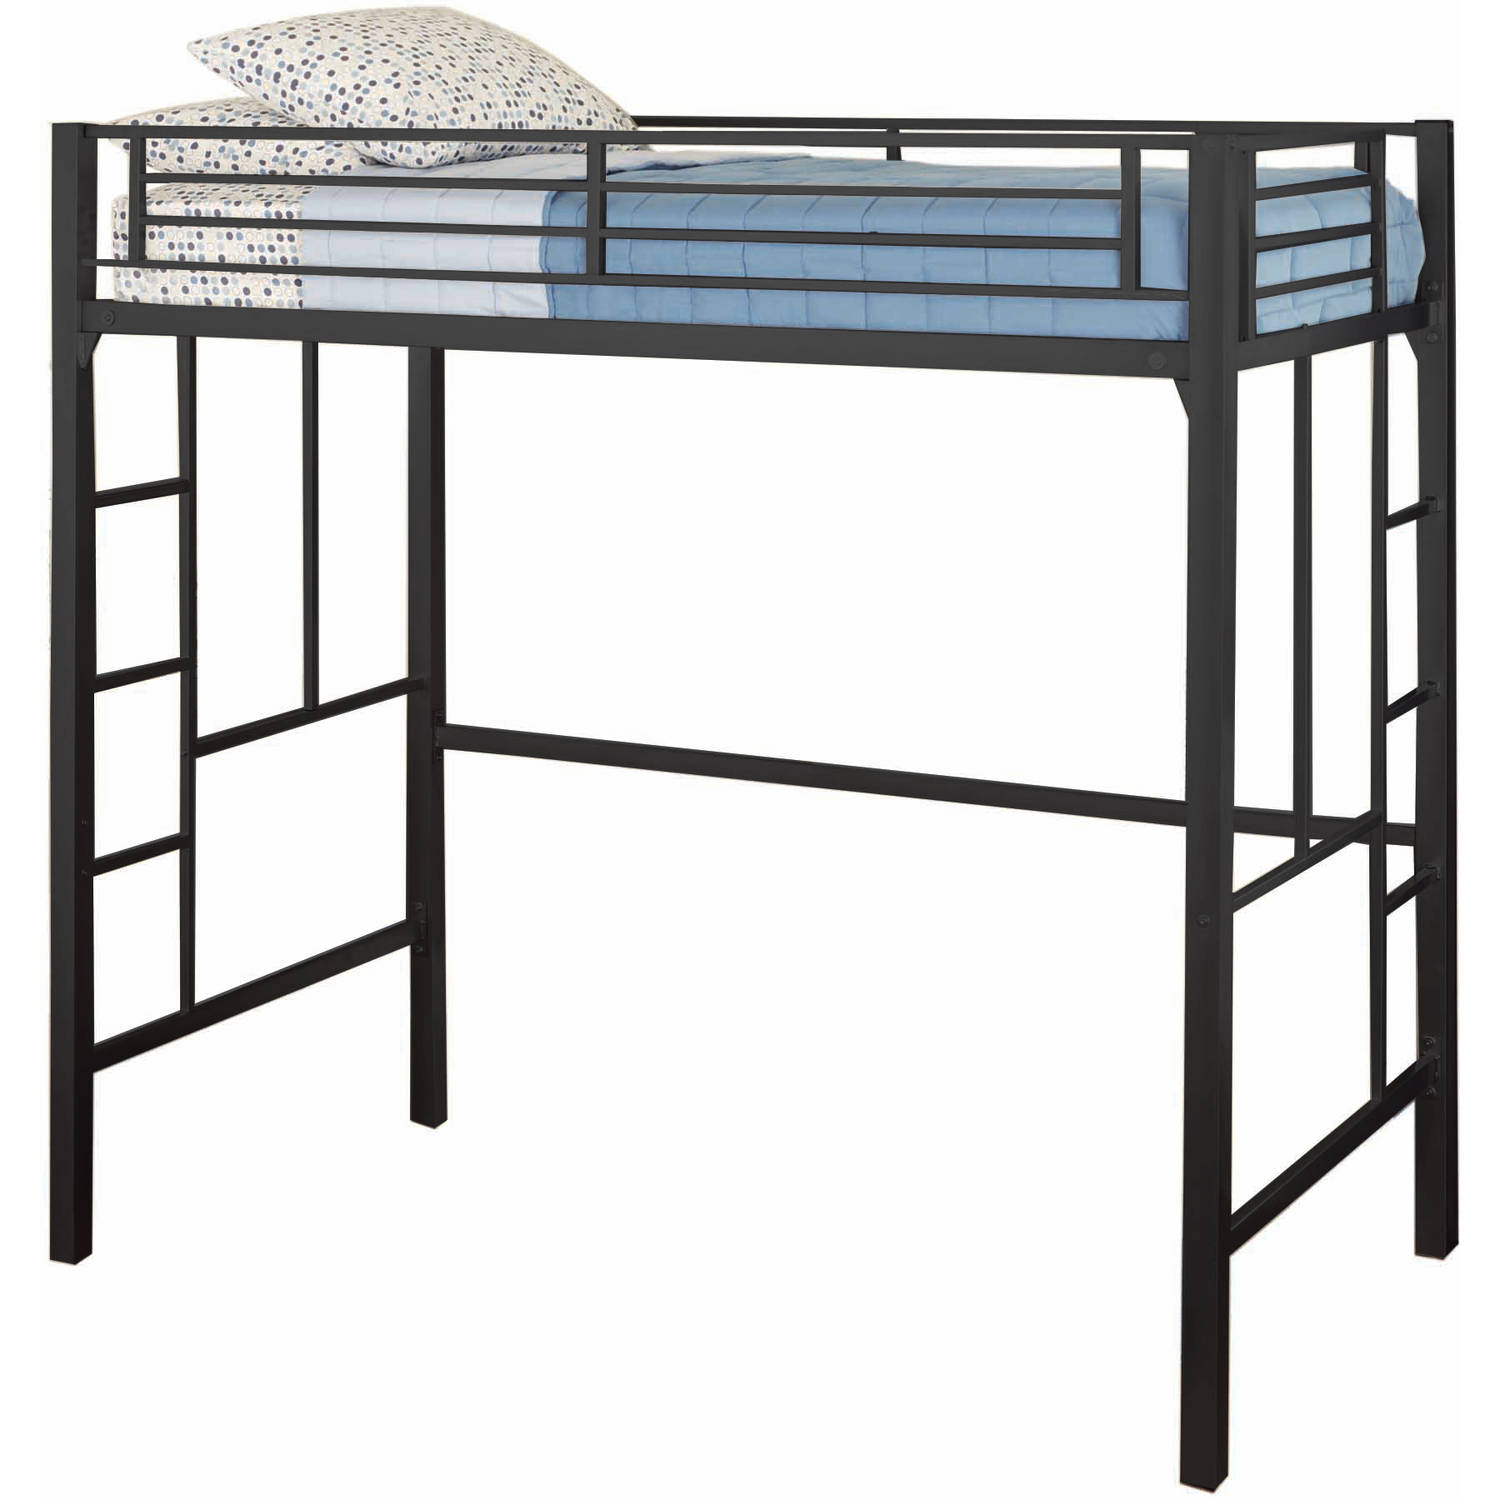 Black Loft Bed Twin Loft Bed Kids Bedroom Furniture Bunk Beds Dorm